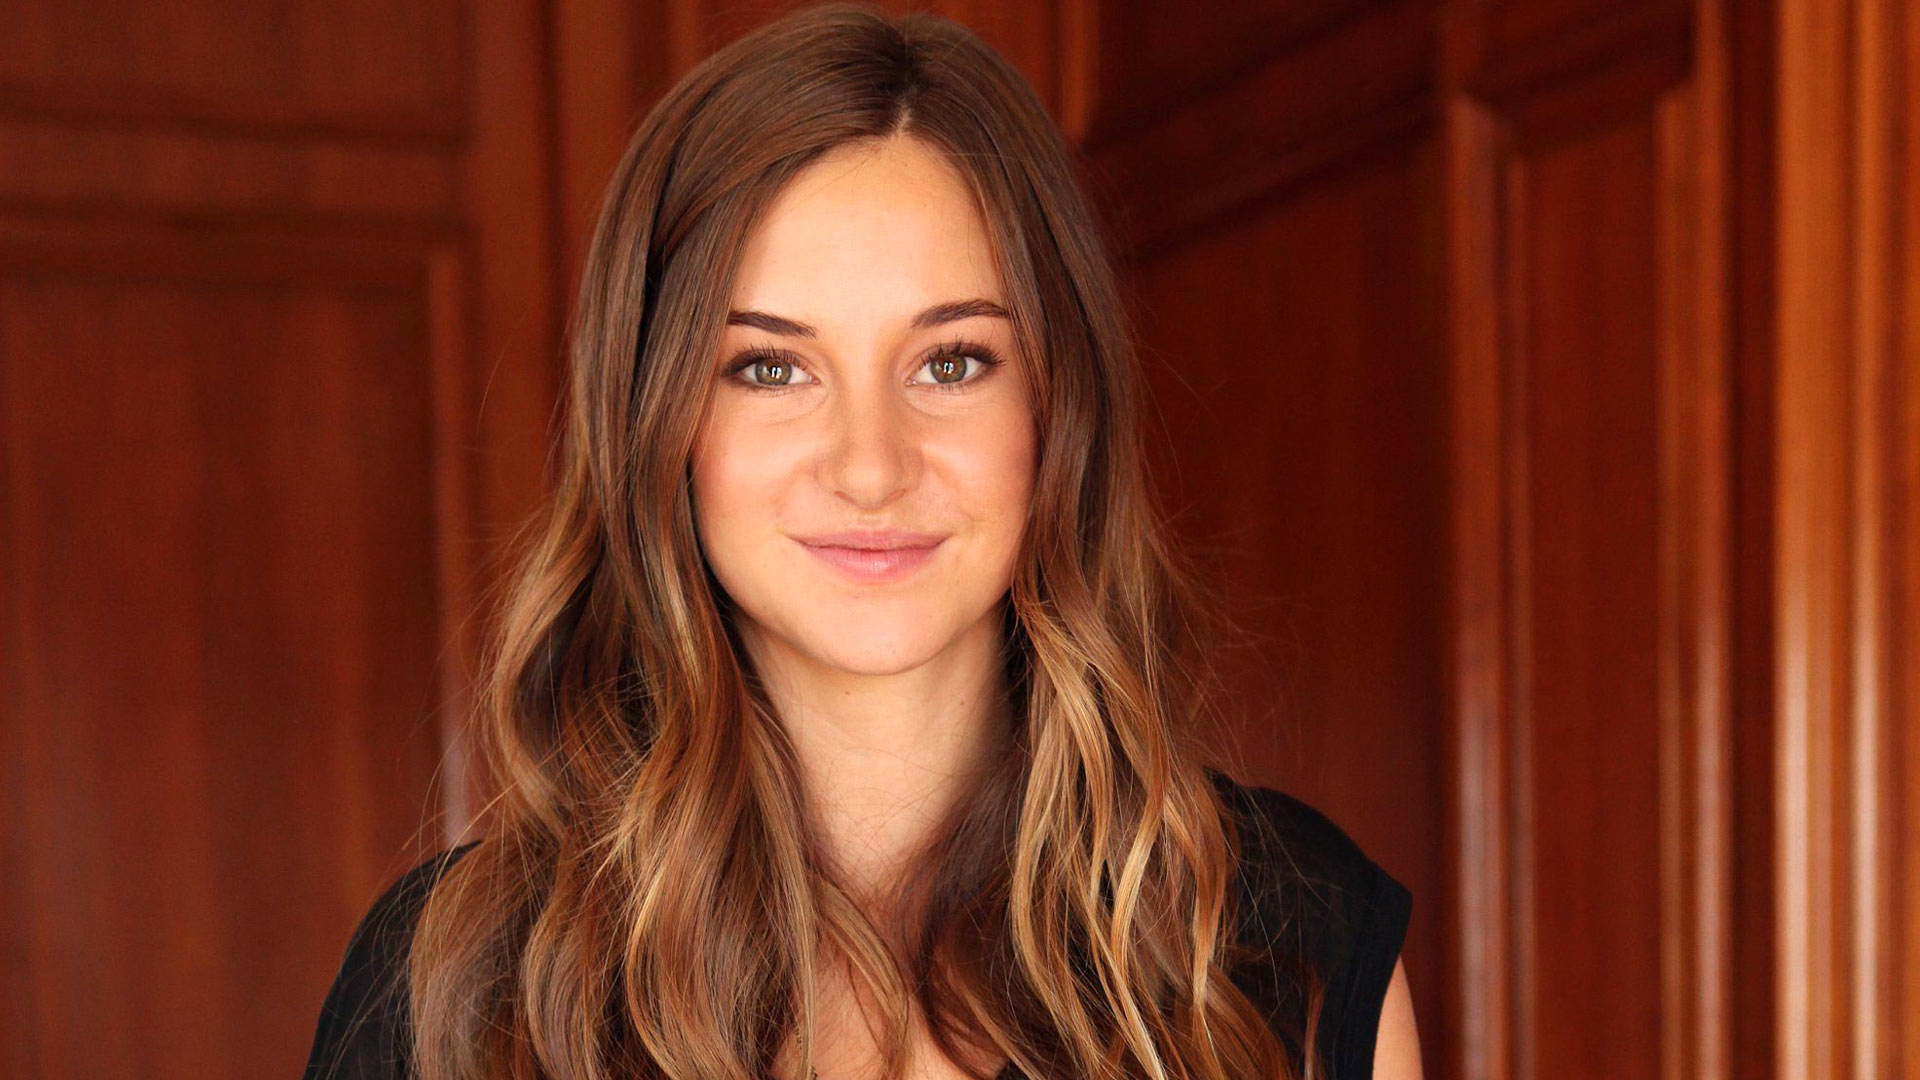 Shailene woodley full hd wallpaper and background image 1920x1080 celebrity shailene woodley actress american brunette brown eyes wallpaper thecheapjerseys Choice Image